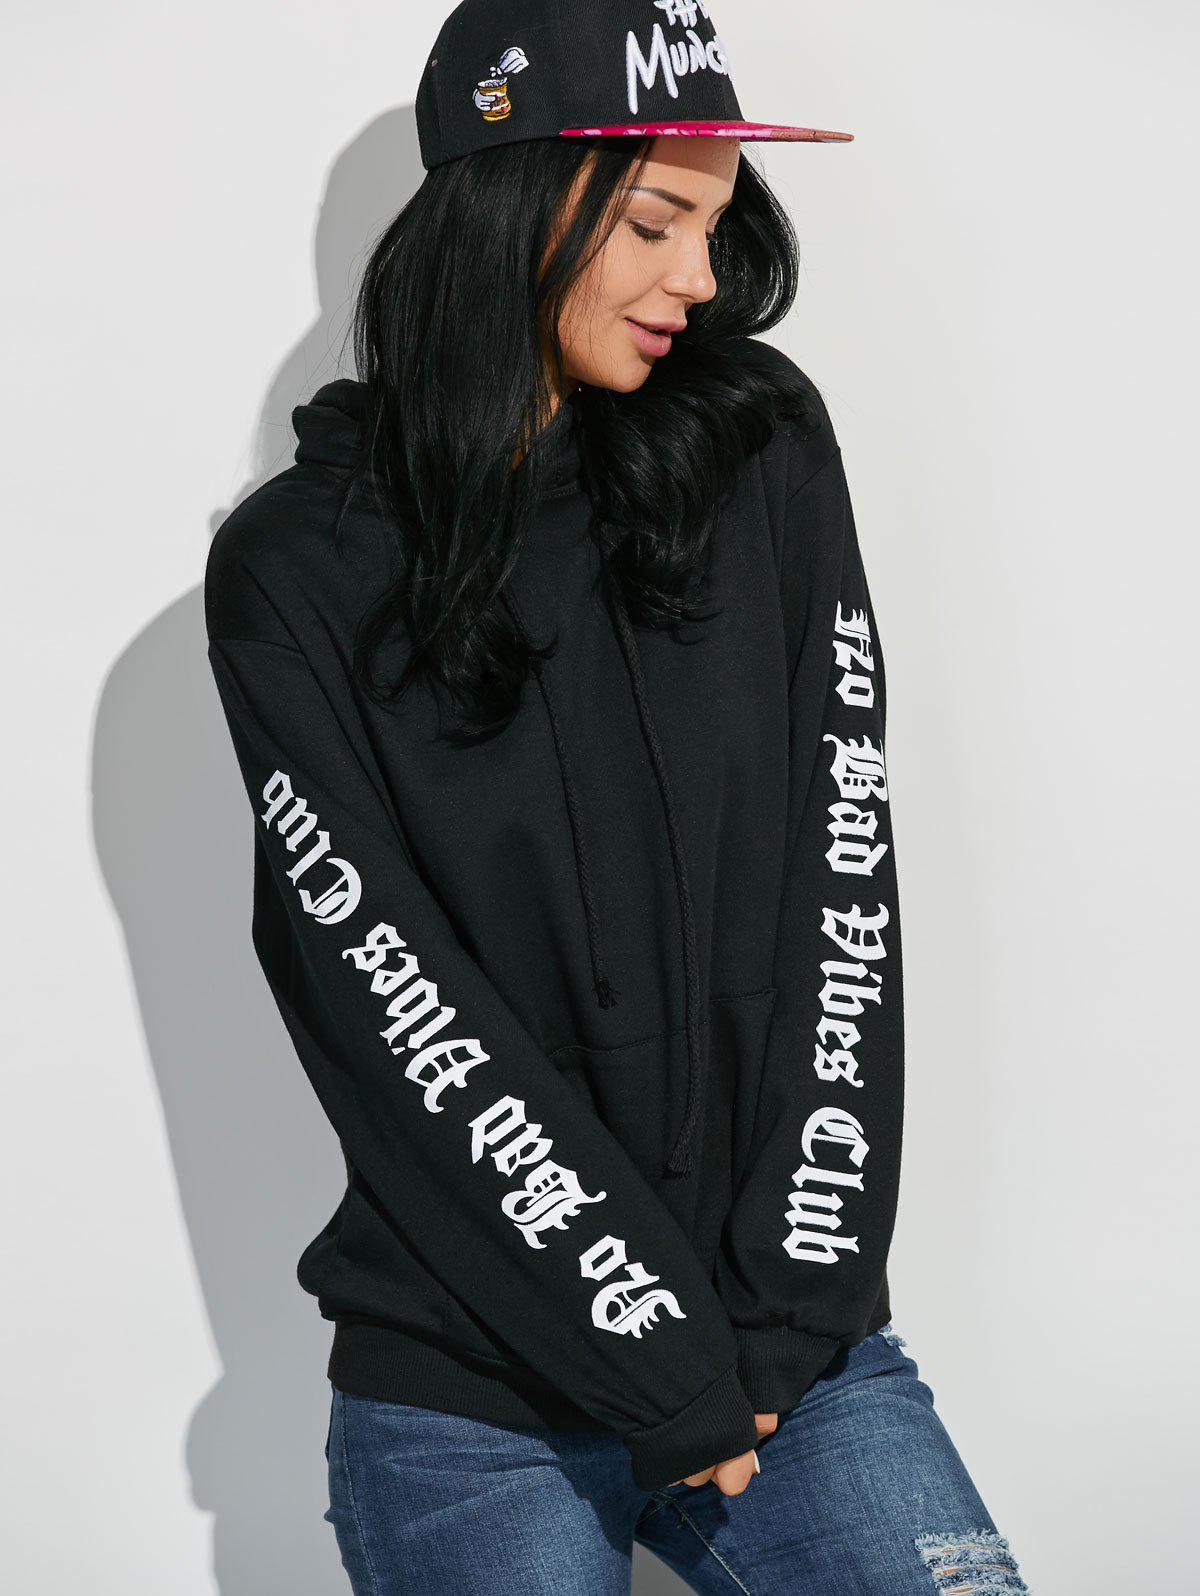 Letter Graphic Sleeve Pullover Hoodie